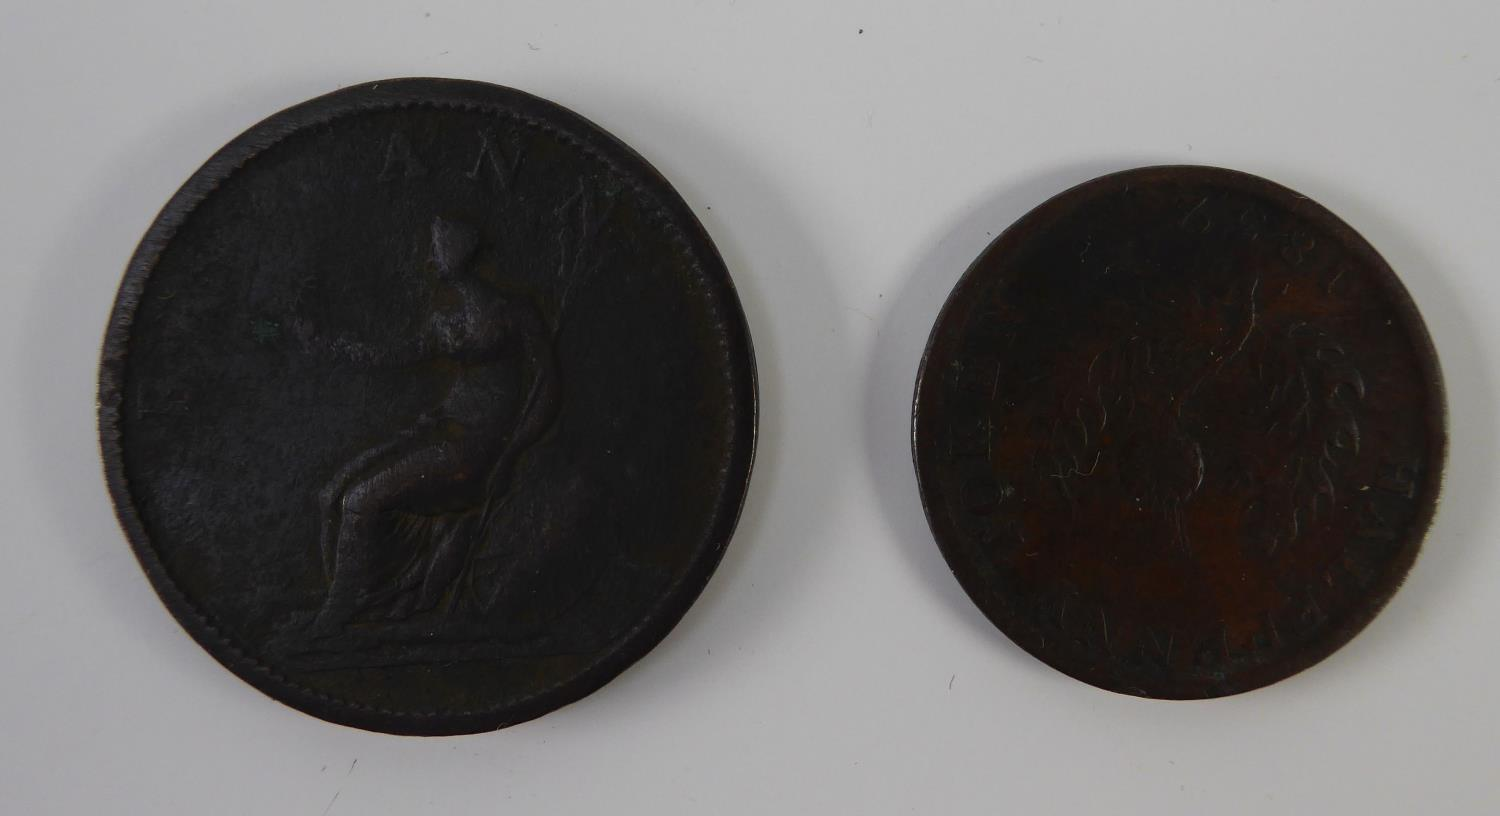 Lot 21 - WILLIAM IV PROVINCE OF NOVA SCOTIA HALF PENNY TOKEN 1832 (F) and a GEORGE III PENNY 1806, showing